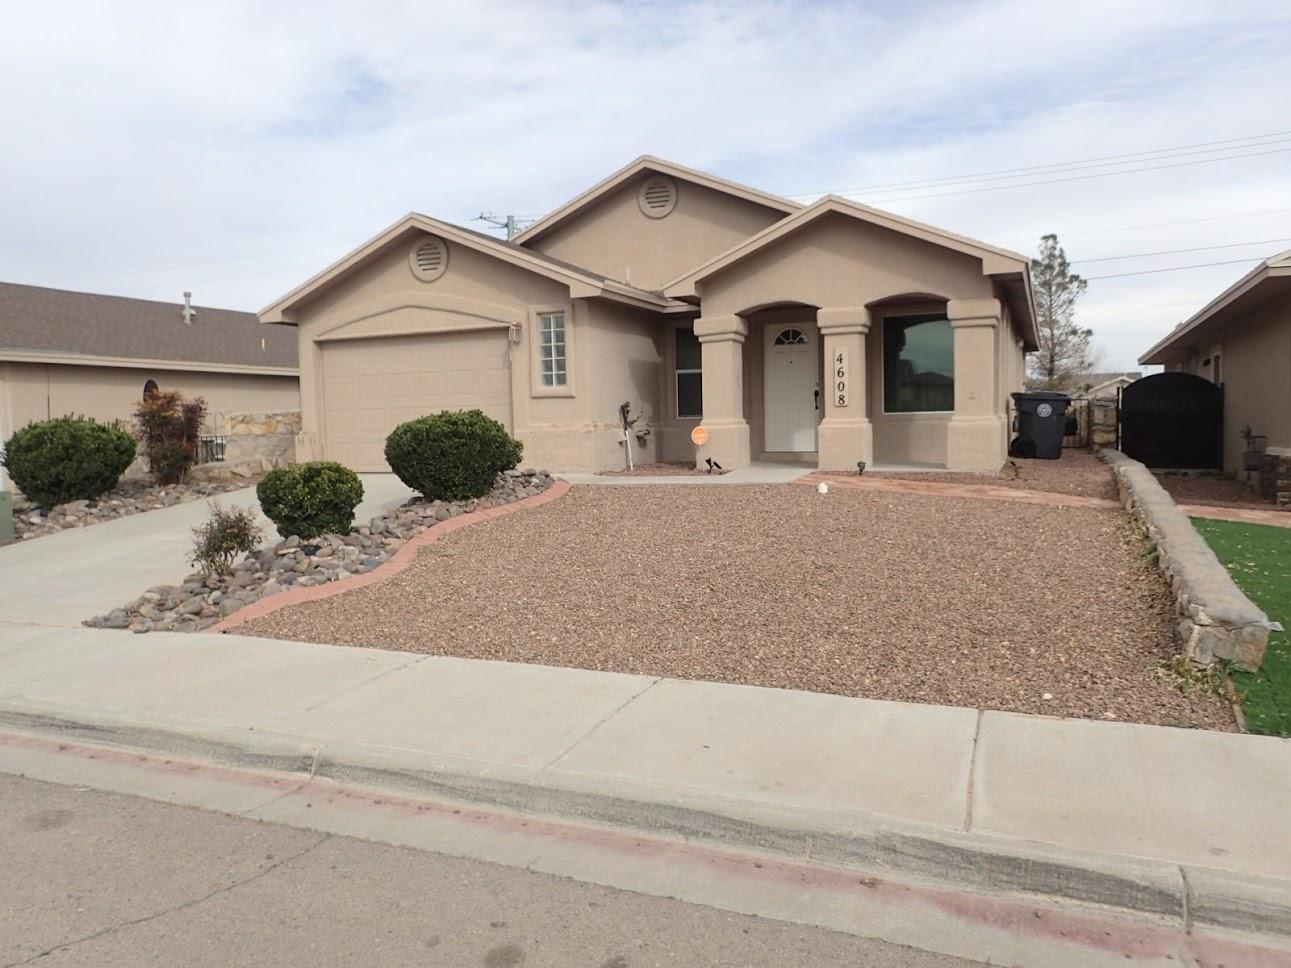 4608 LORENZO PONCE, El Paso, Texas 79938, 4 Bedrooms Bedrooms, ,2 BathroomsBathrooms,Residential Rental,For Rent,LORENZO PONCE,839254